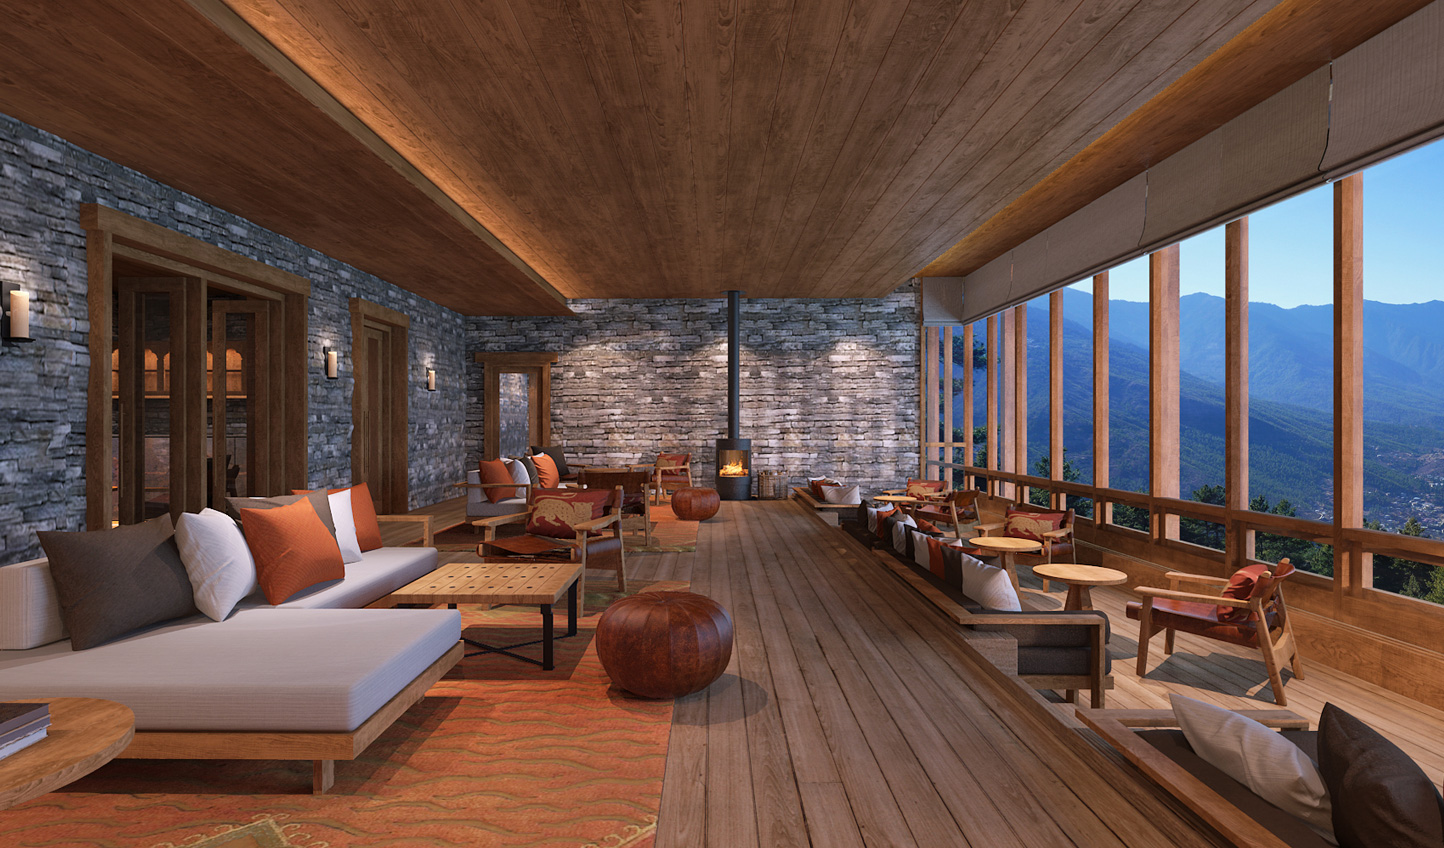 Embrace the views over Paro from Six Senses Paro